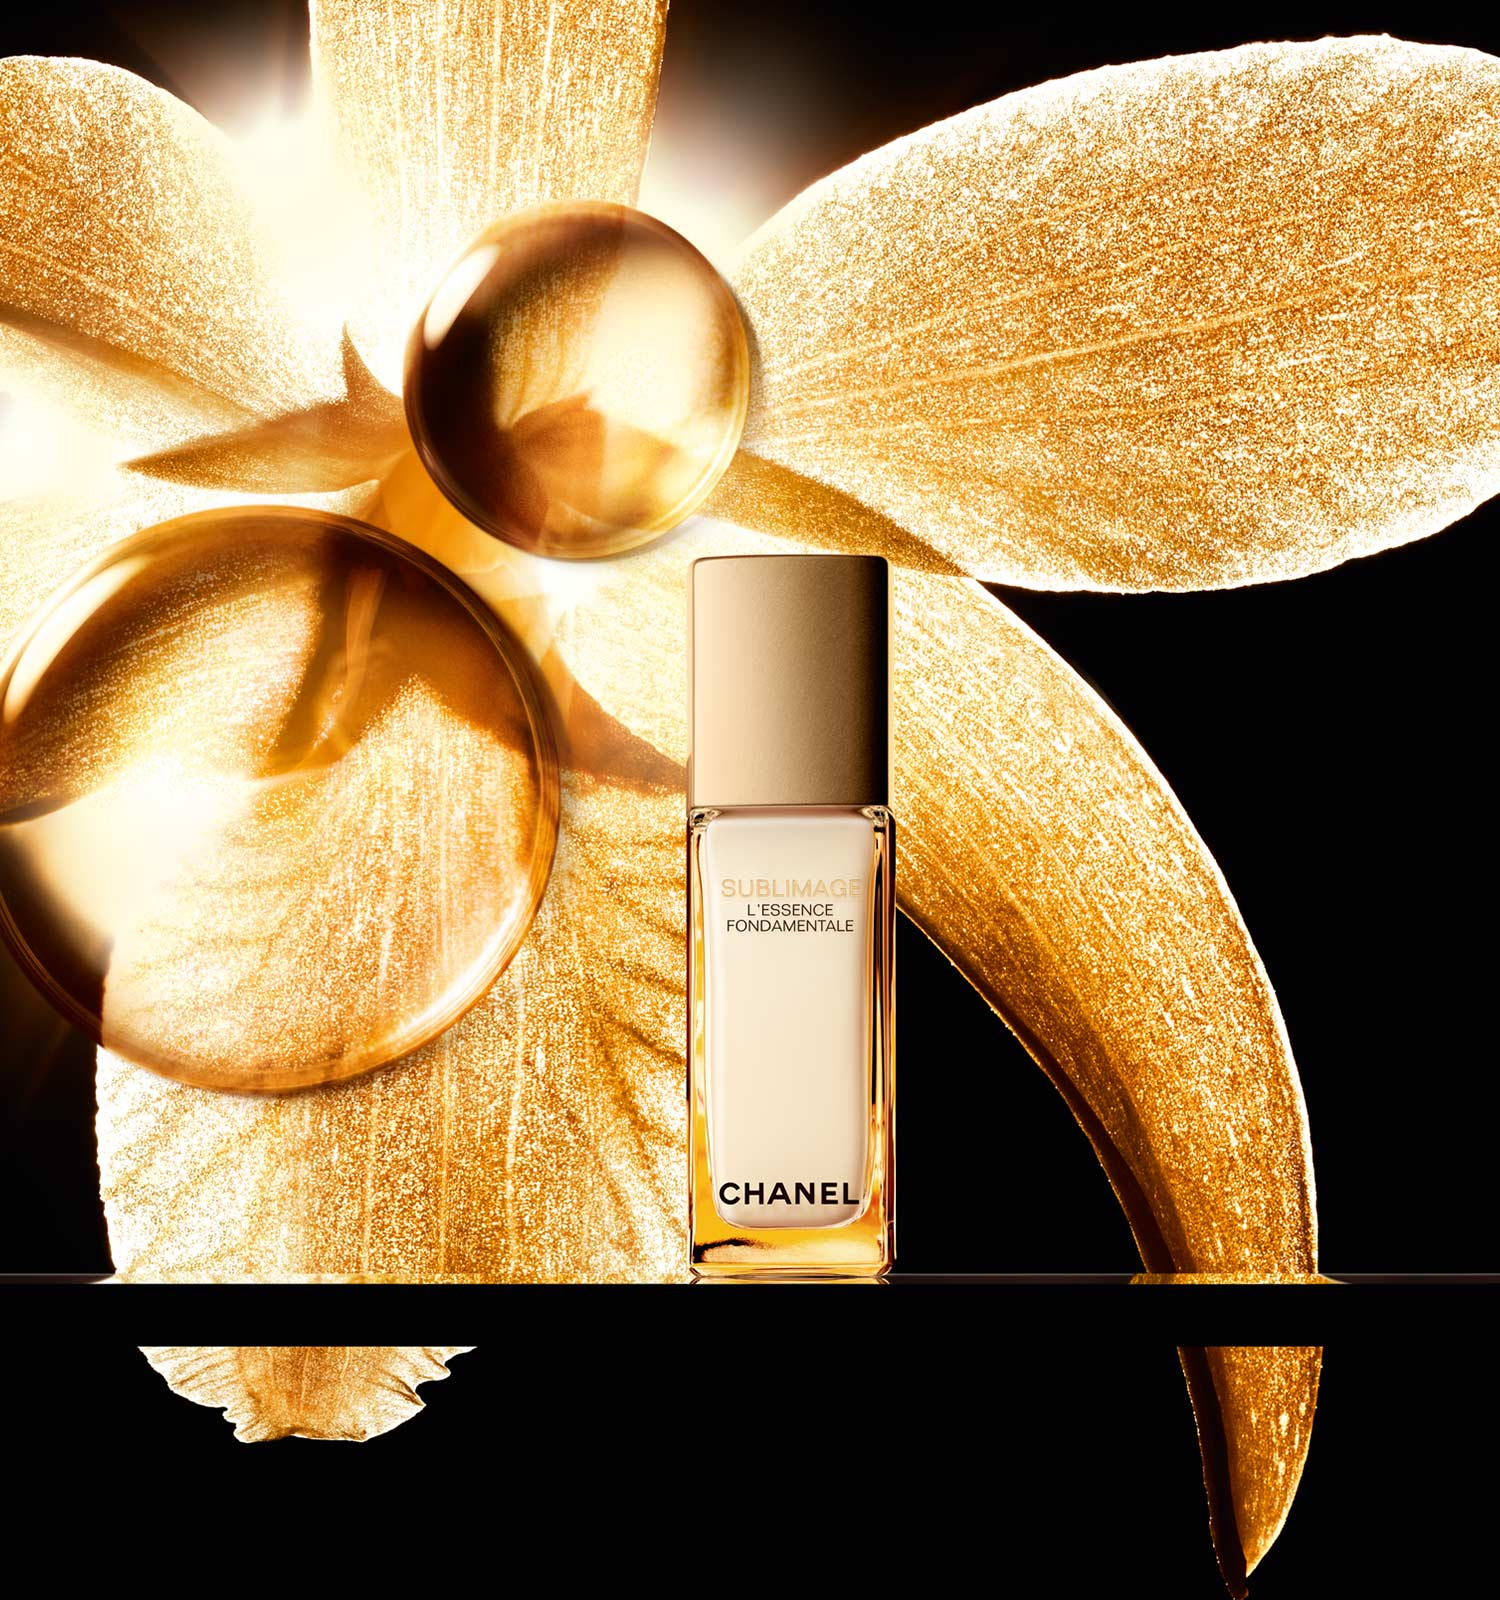 Sublimage - Skincare | CHANEL